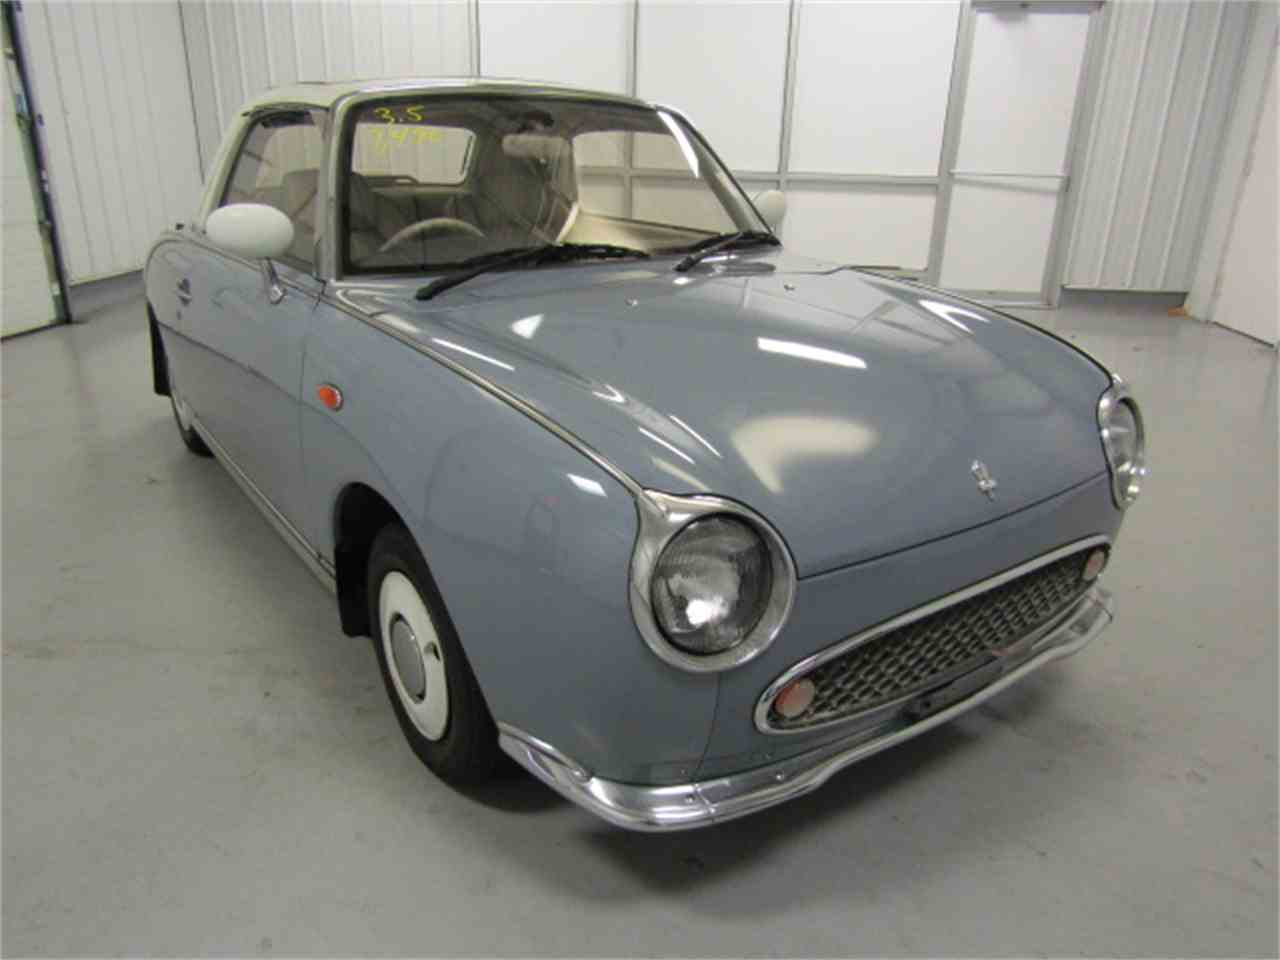 1991 Nissan Figaro for Sale - CC-923999